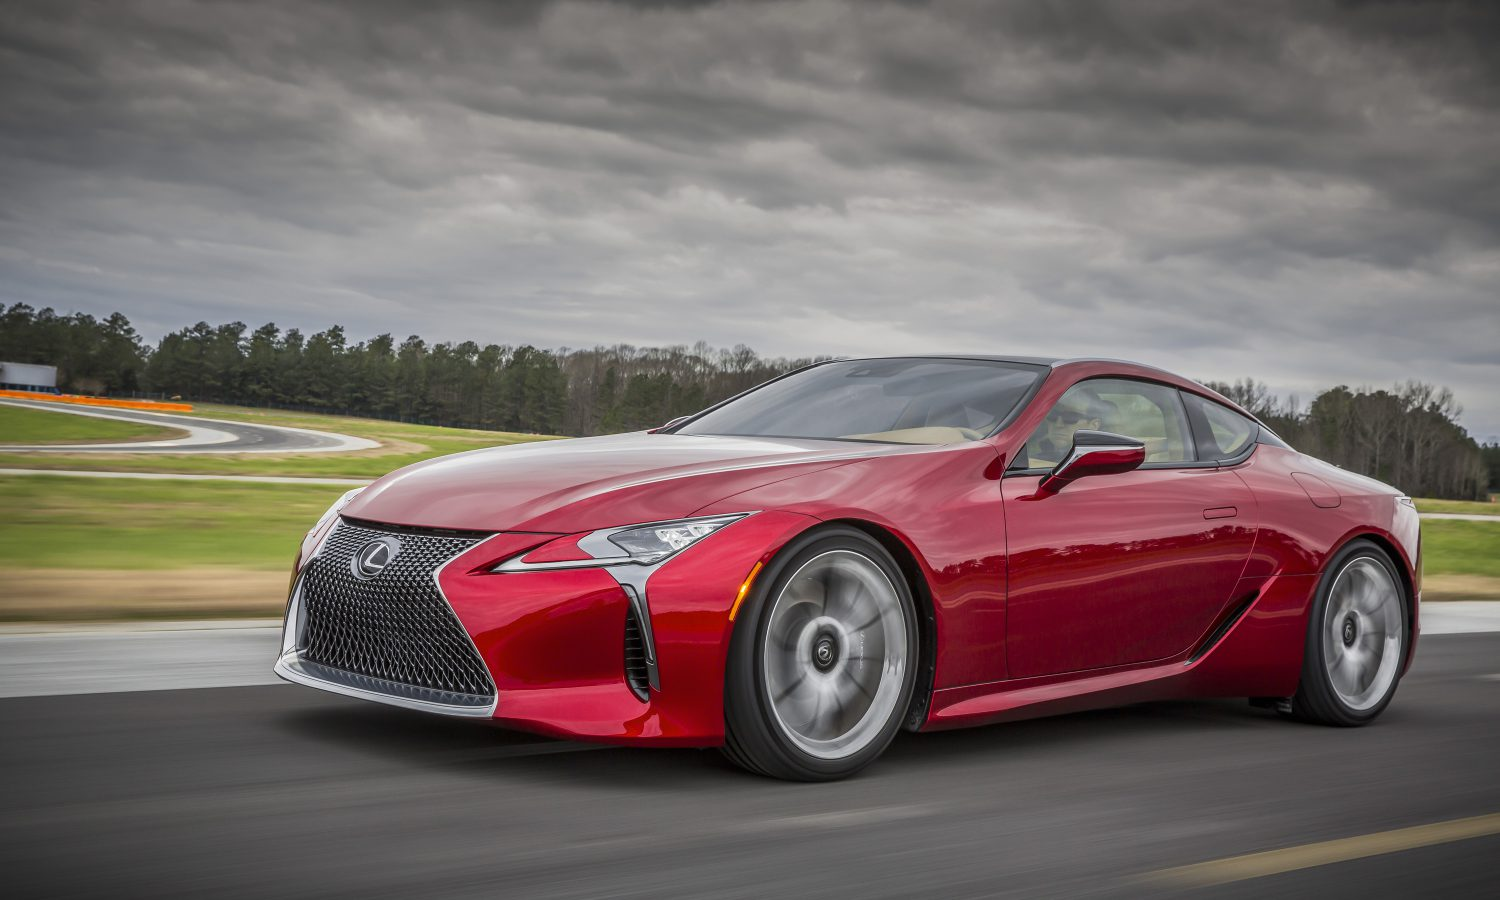 Global Debut of All-New Lexus LC 500 at the 2016 NAIAS Signals Dawn of a New Era for Lexus